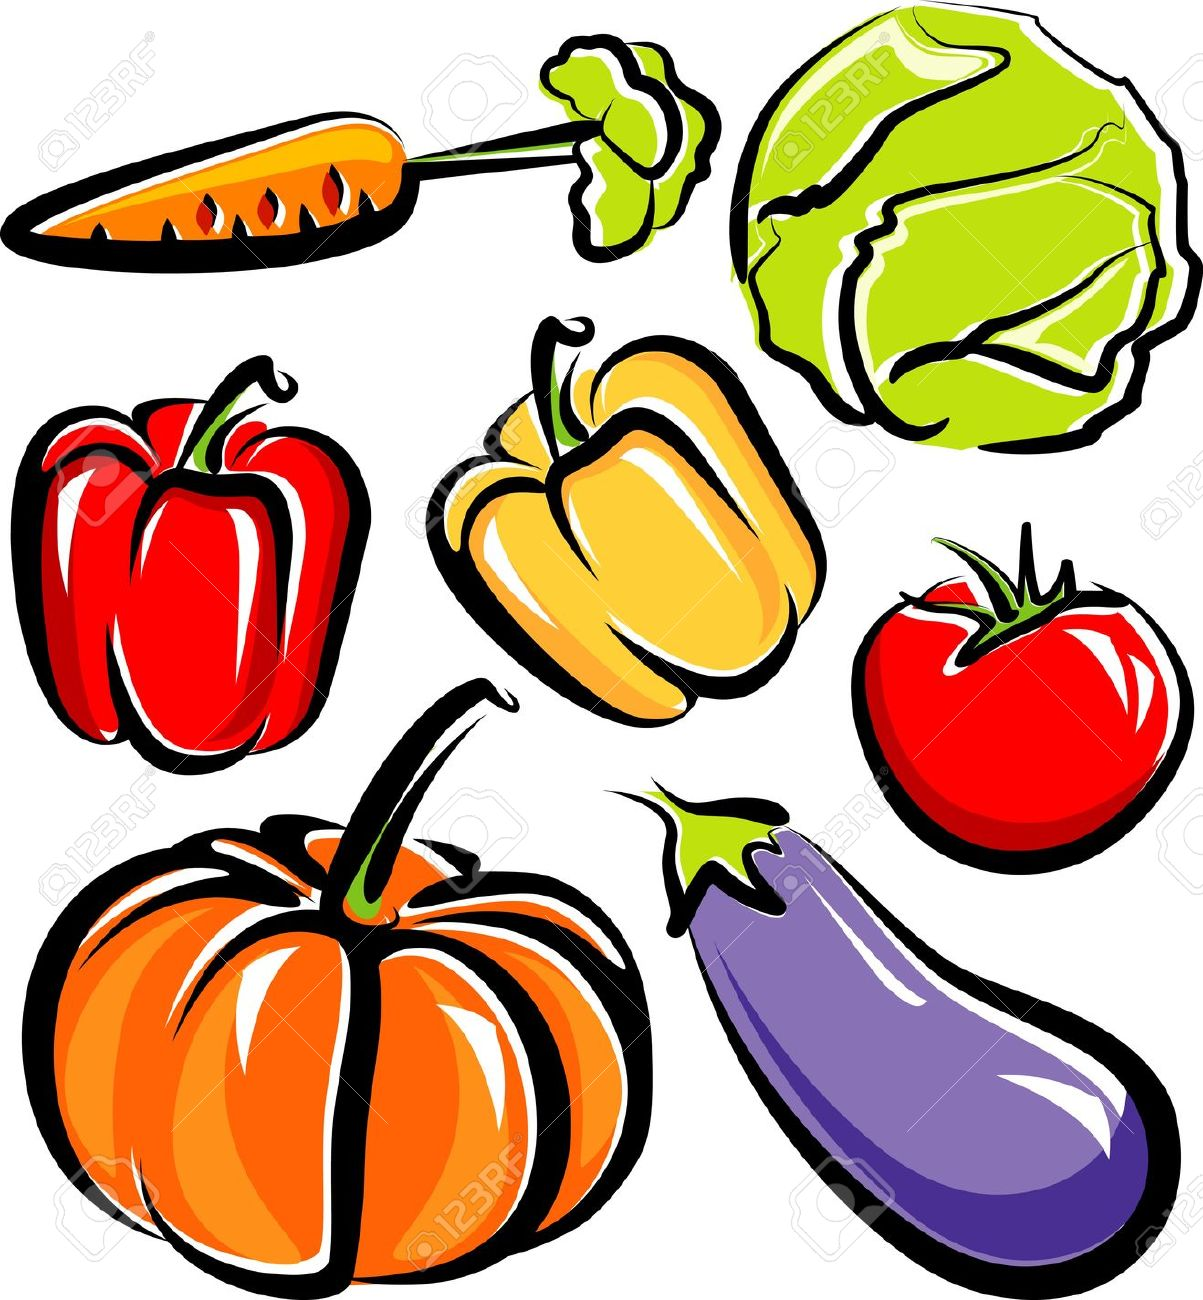 Vegetable plants clipart jpg royalty free library Vegetable Garden Clipart Free | Free download best Vegetable ... jpg royalty free library